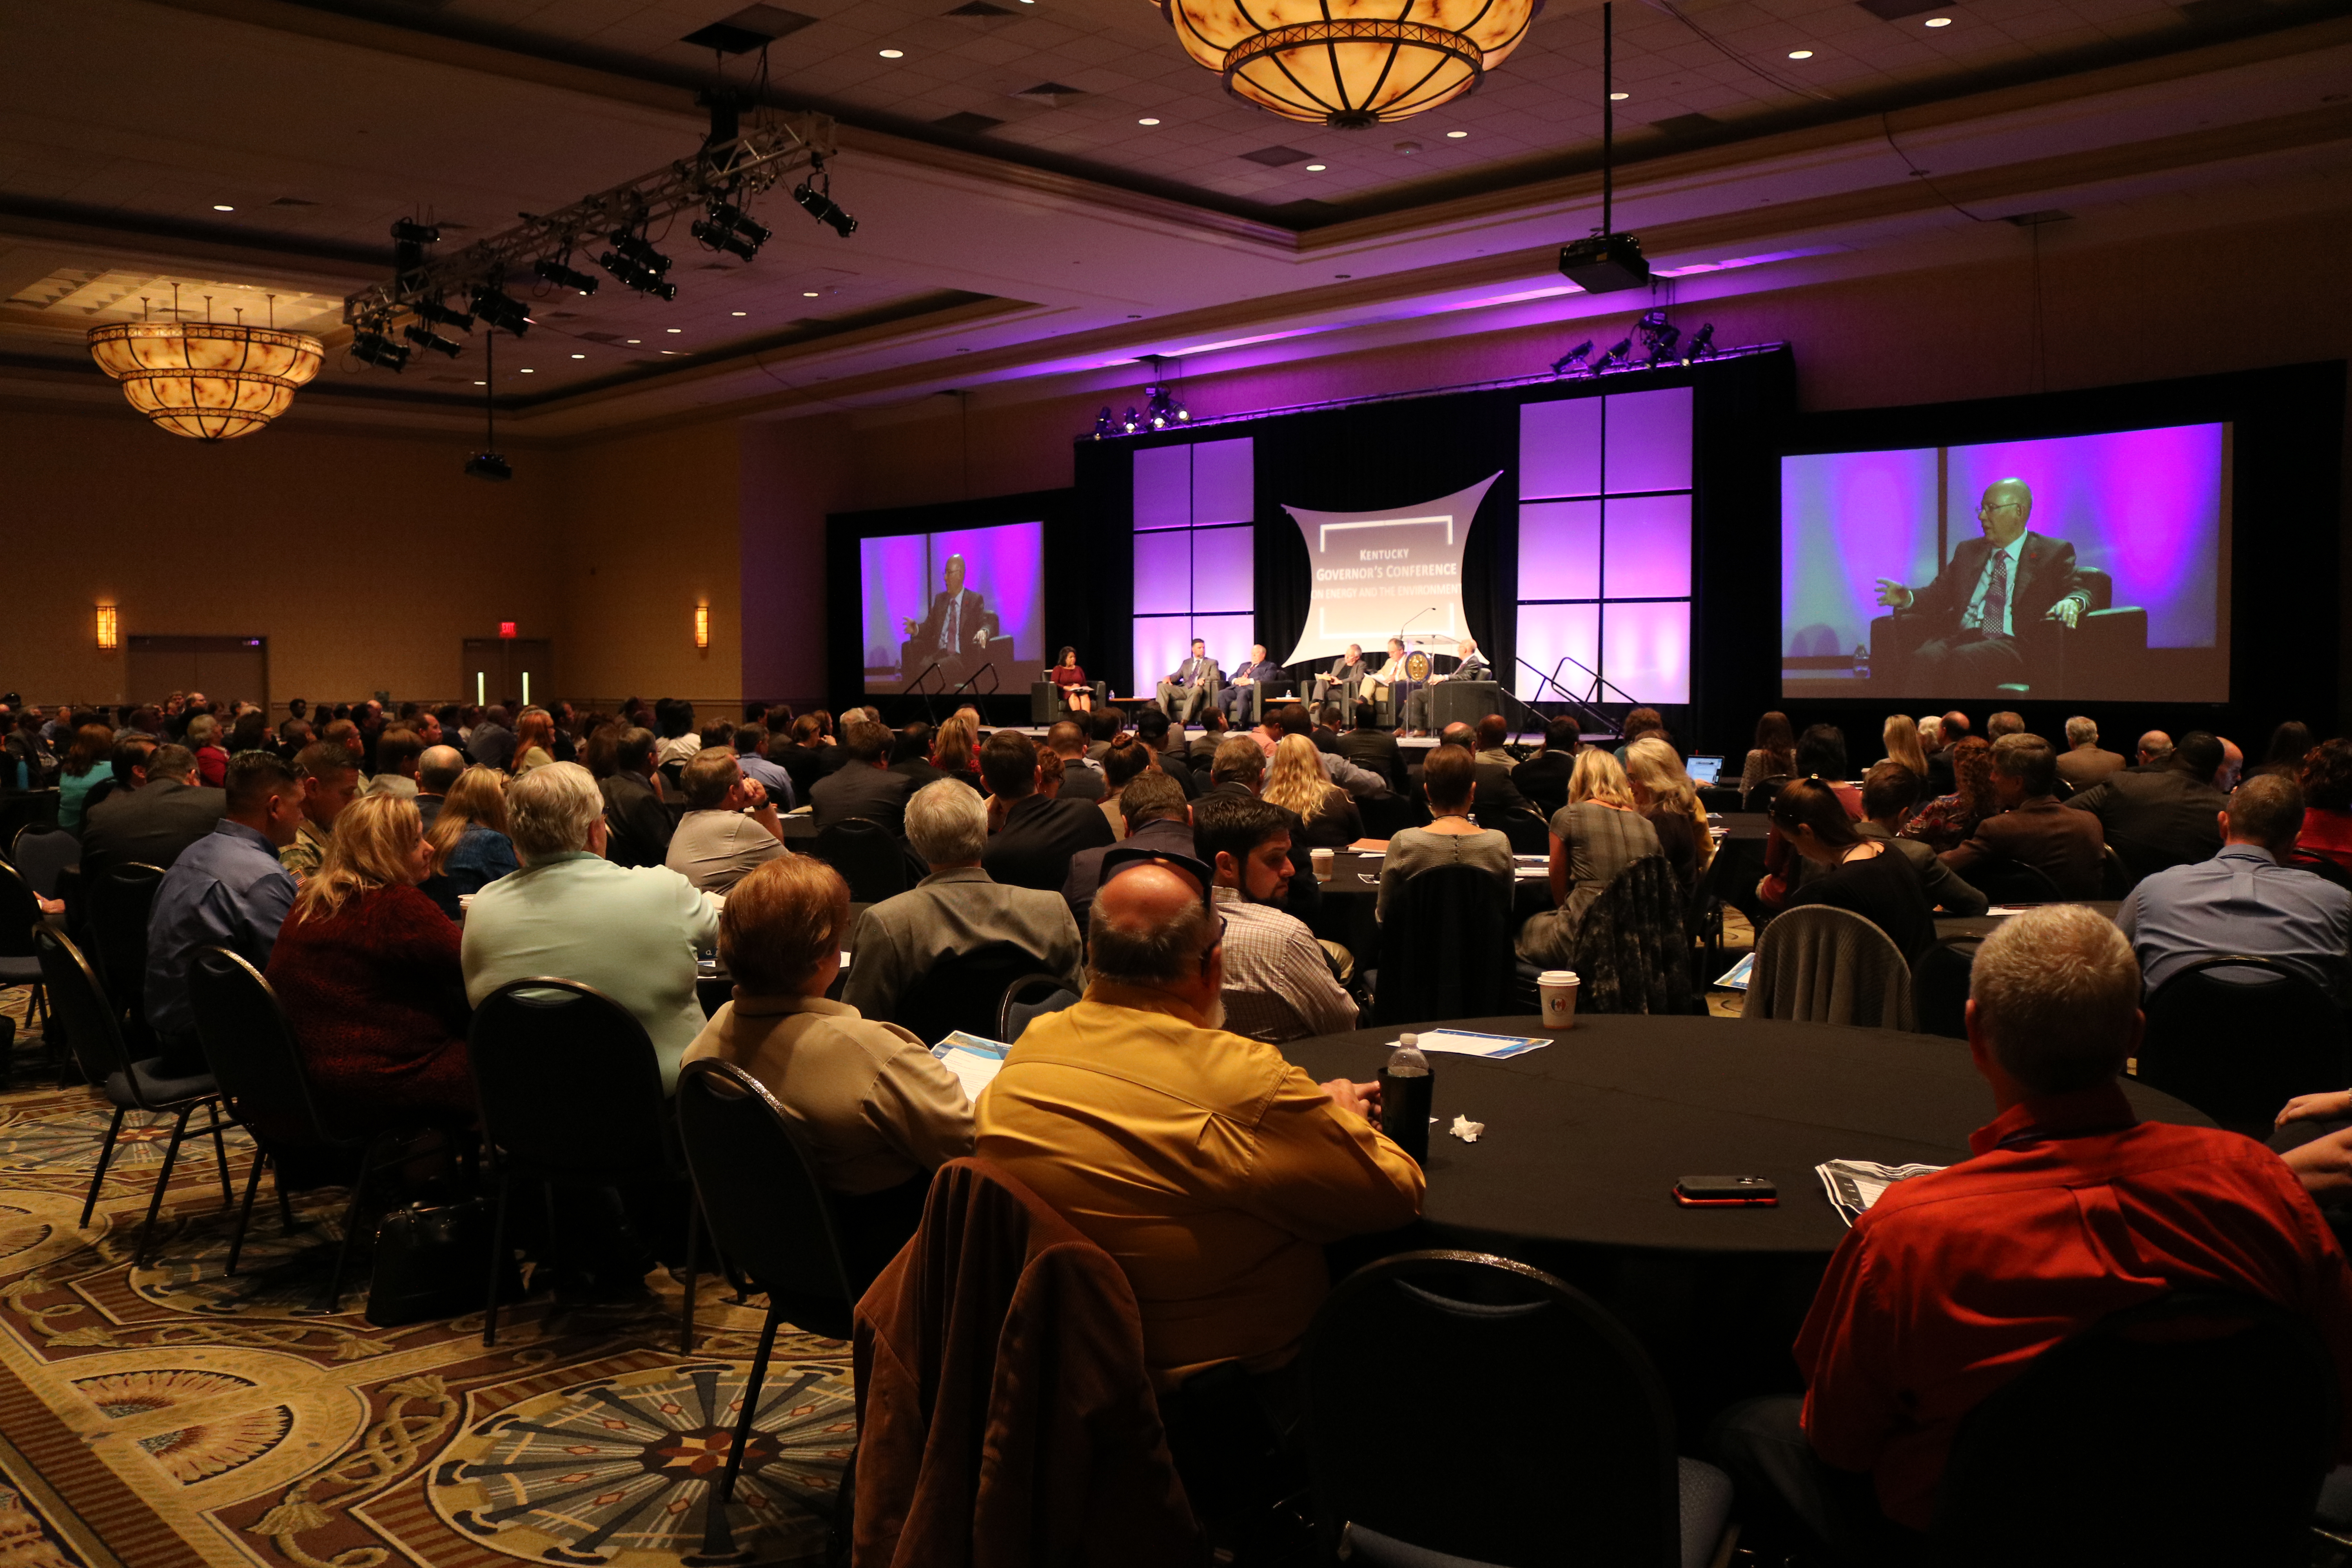 41st Annual Governor's Conference Wraps Day One